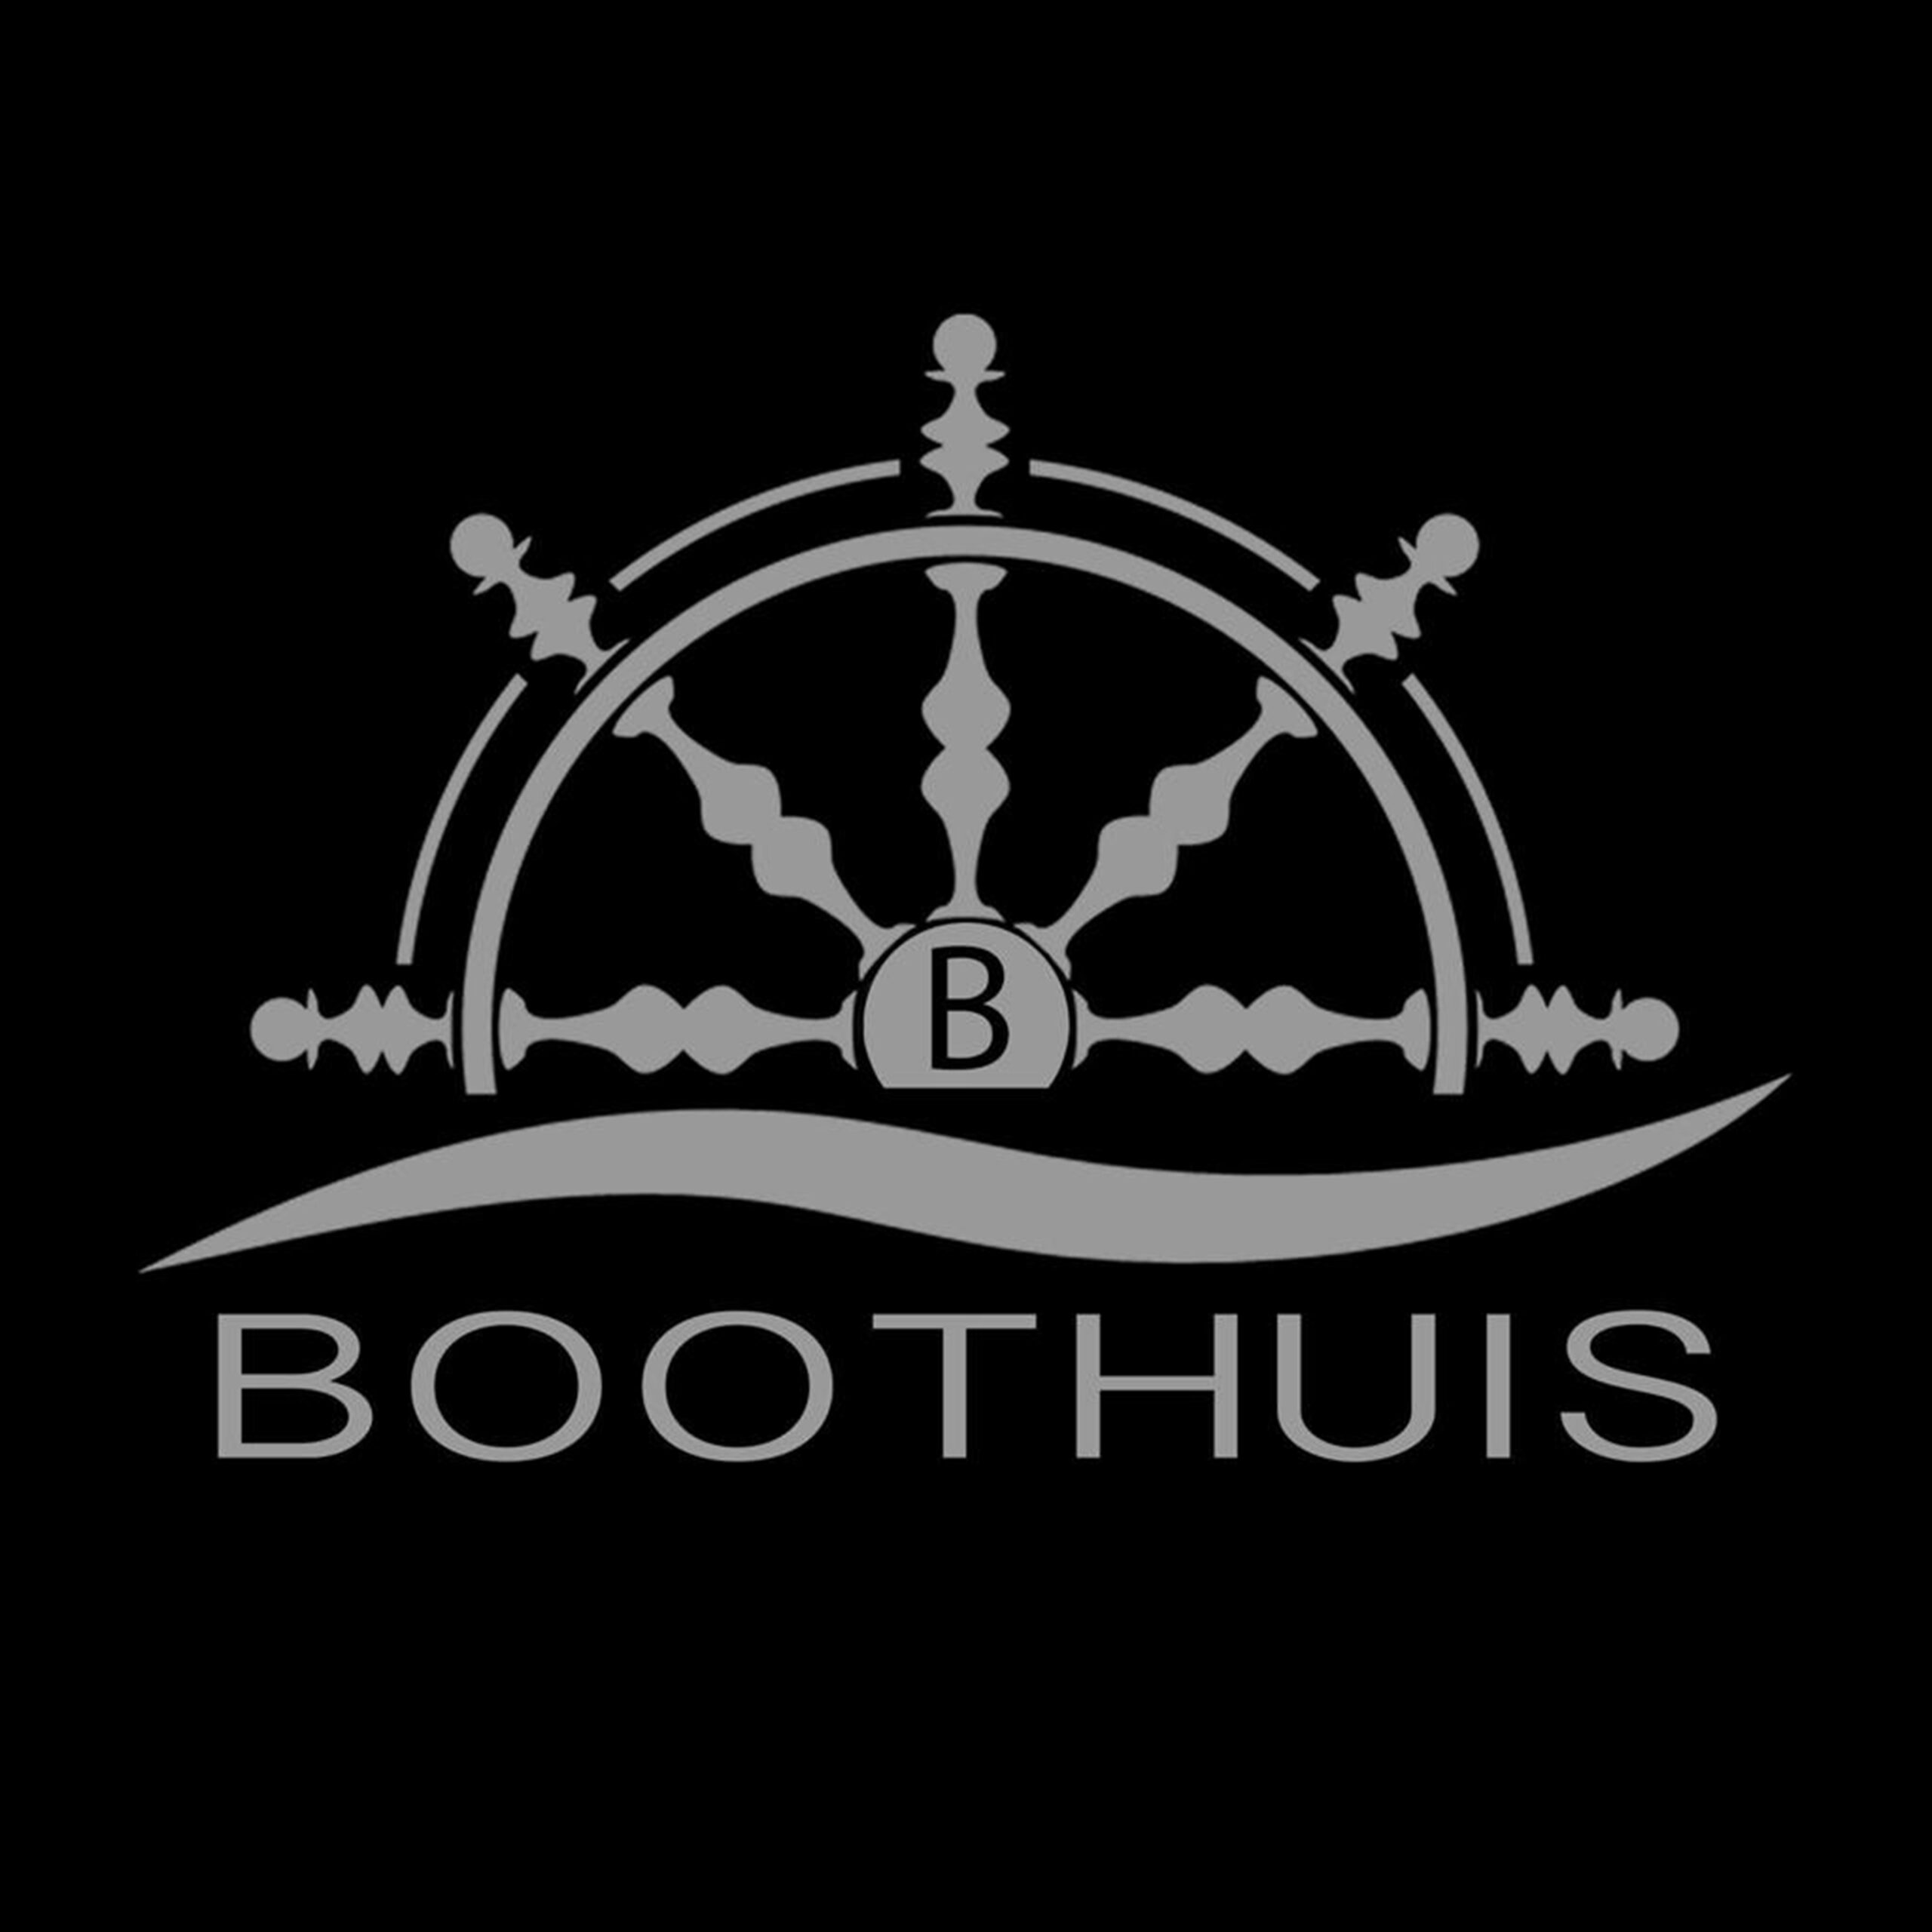 8) Boothuis